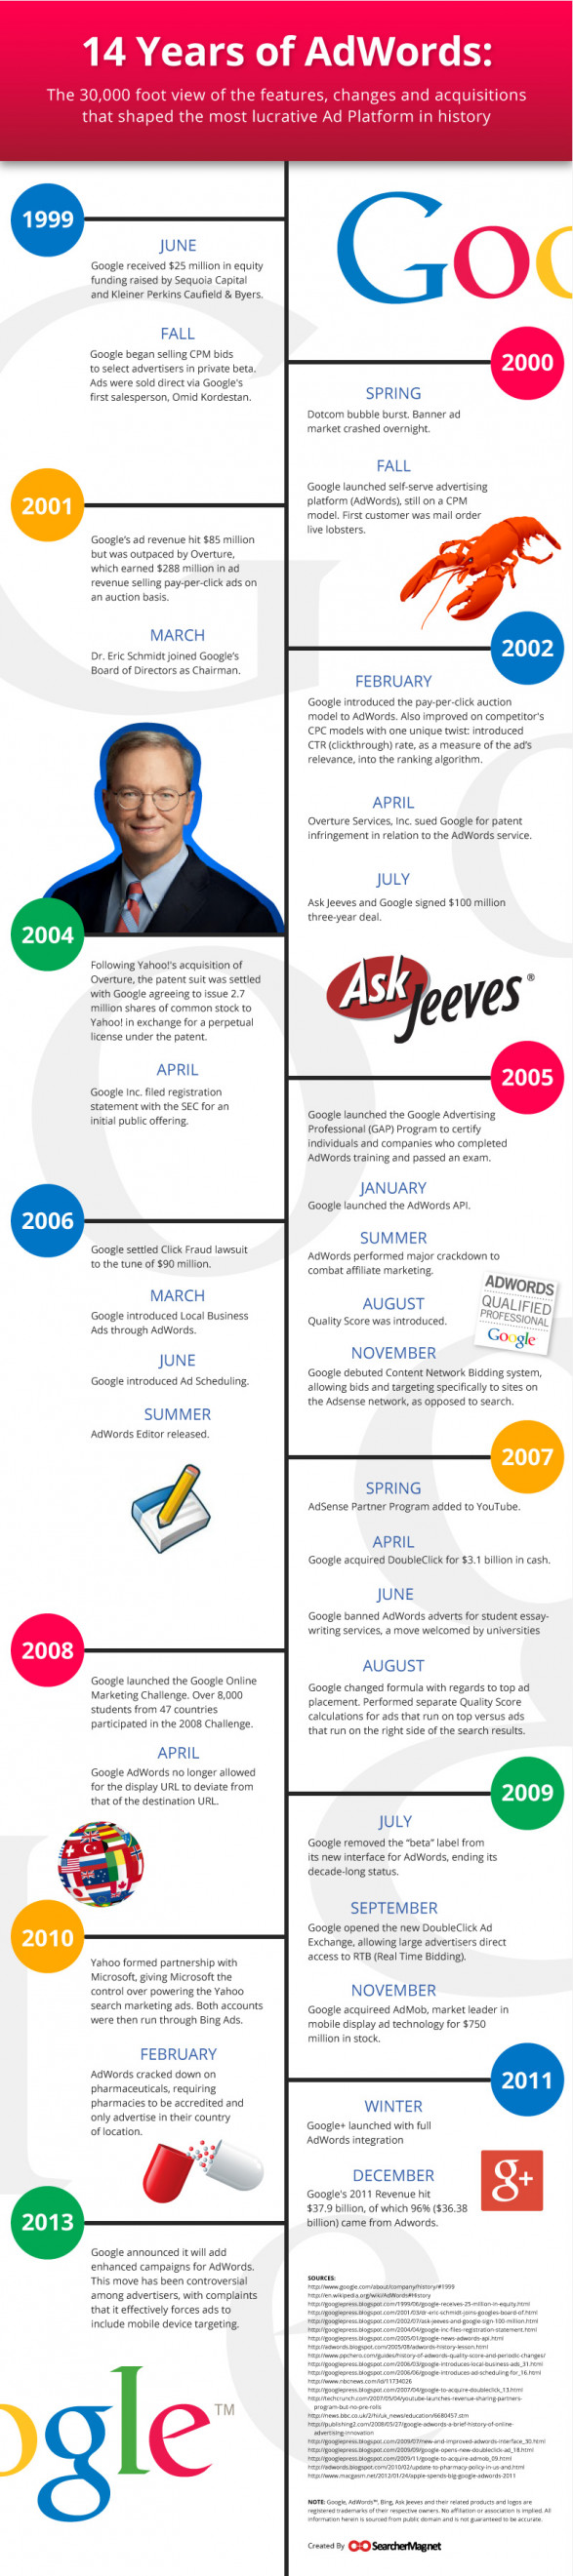 14 Years of Adwords